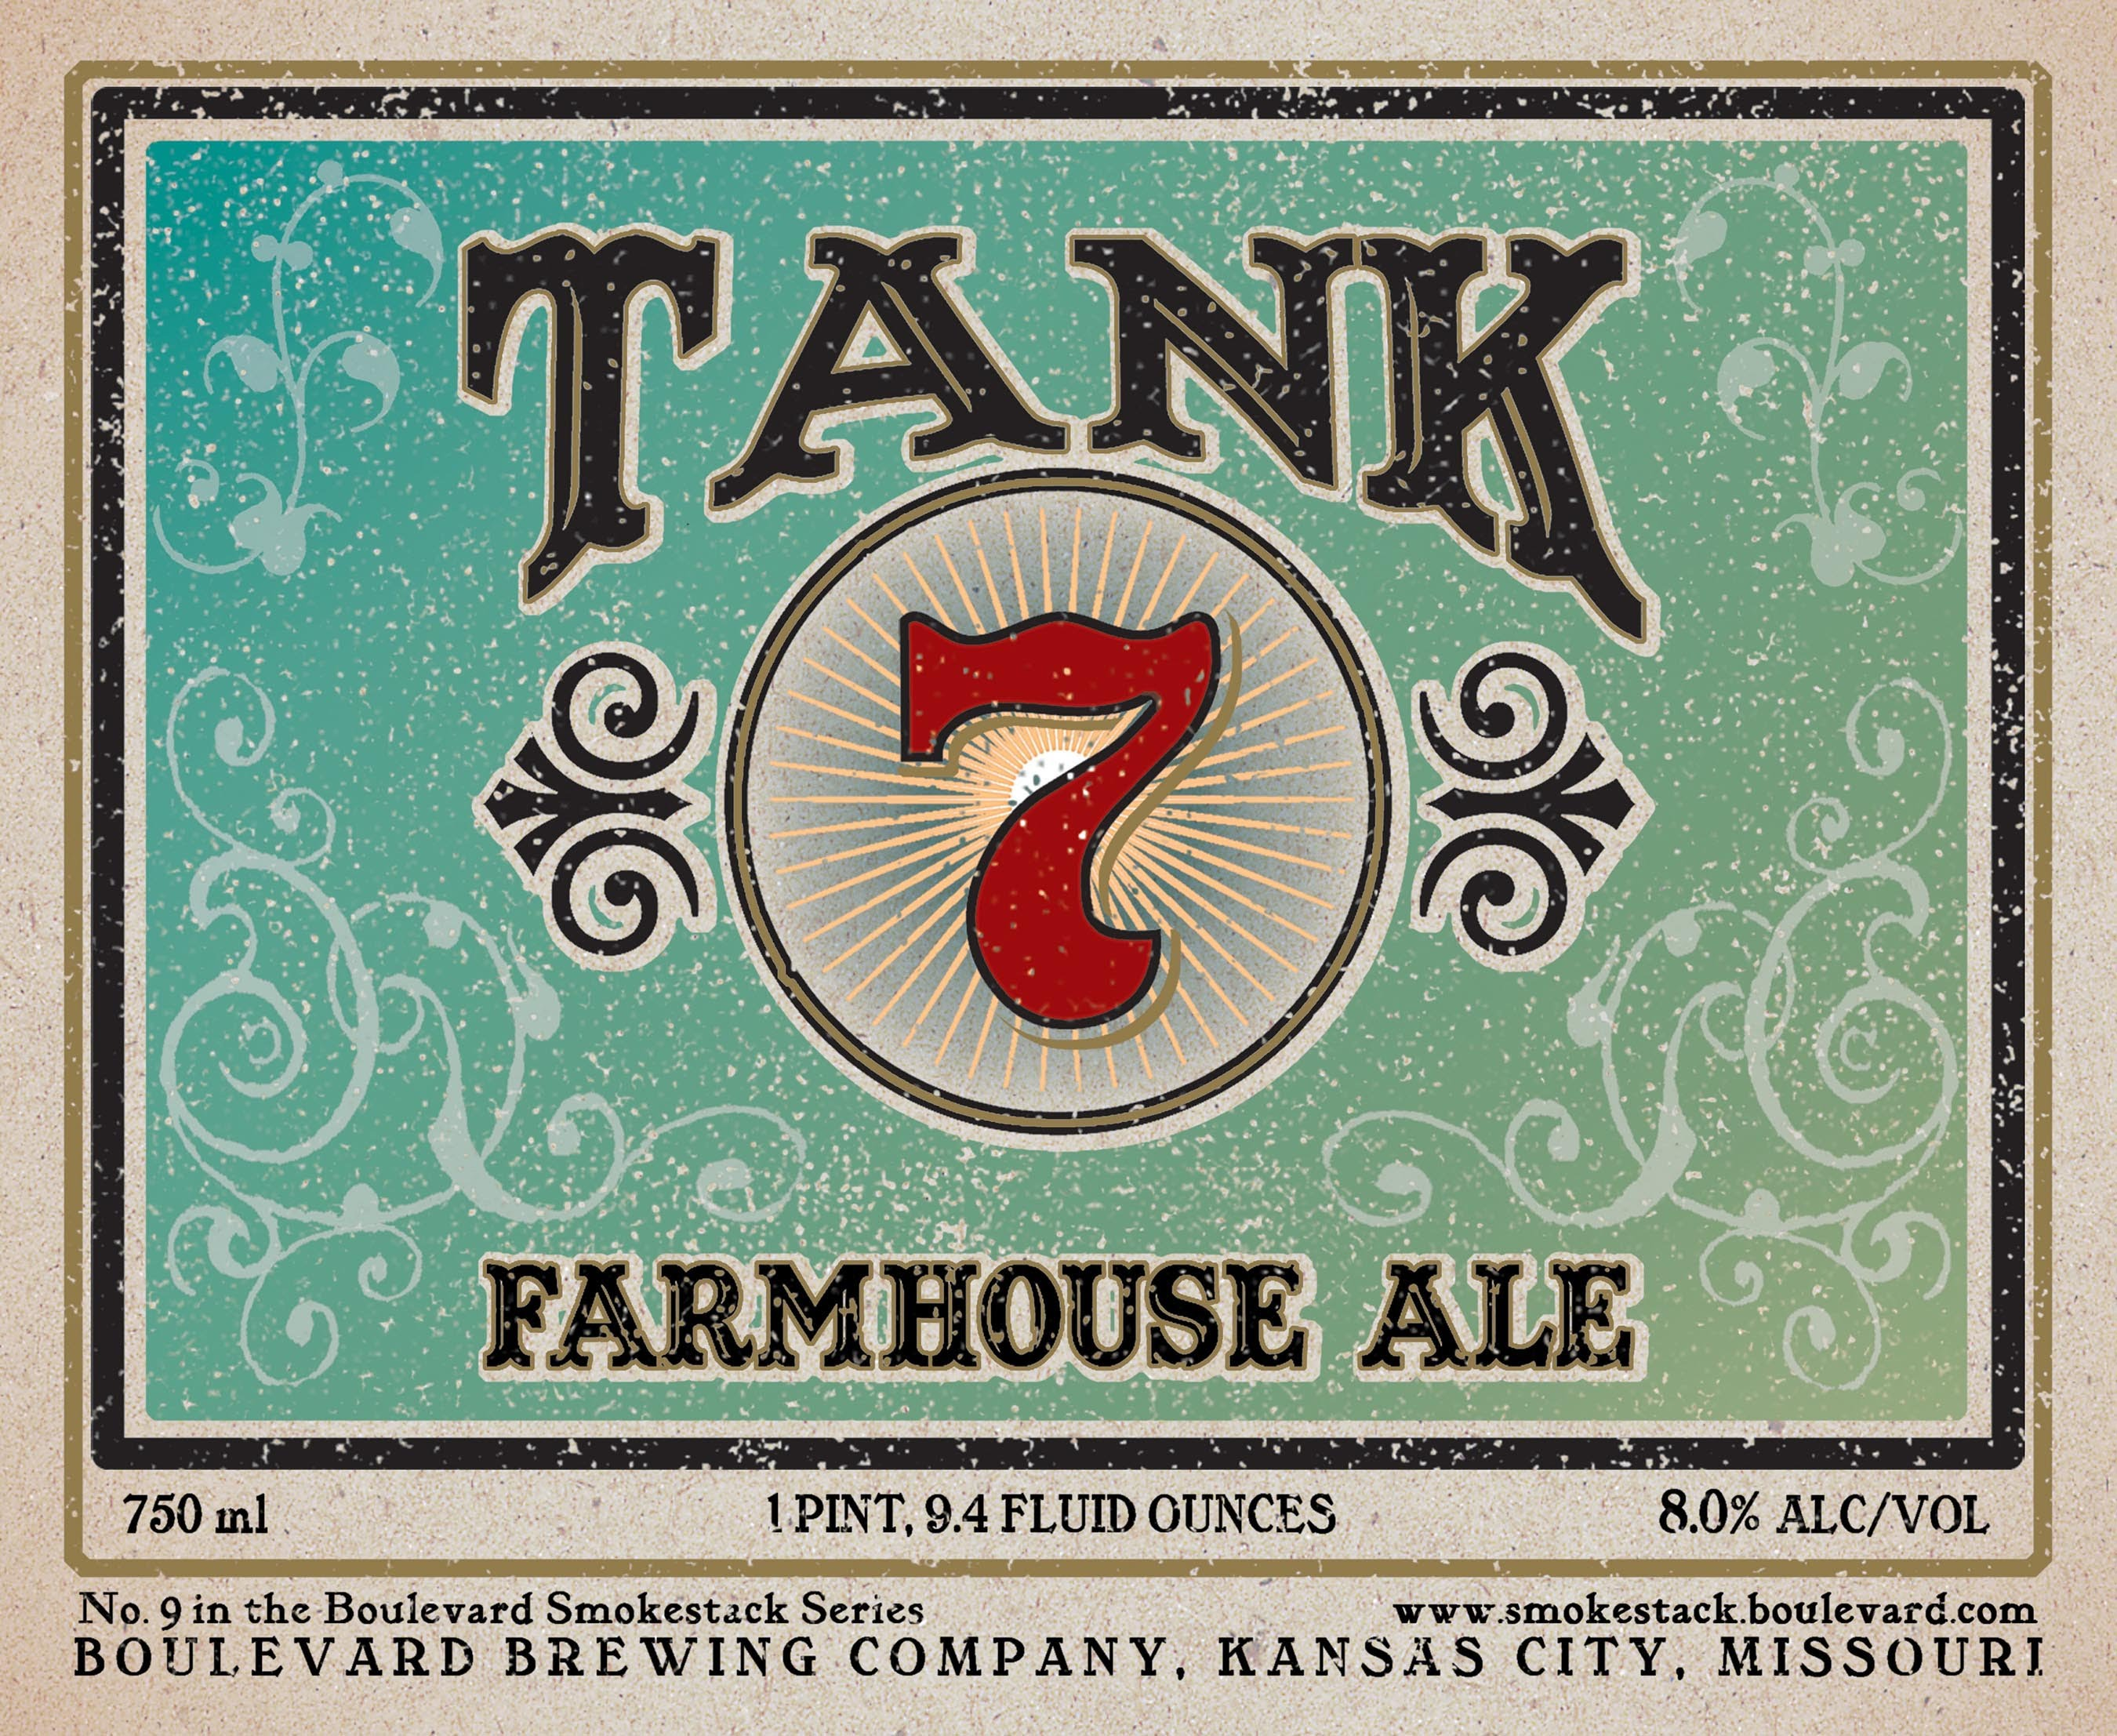 Tank 7 Farmhouse Ale Image